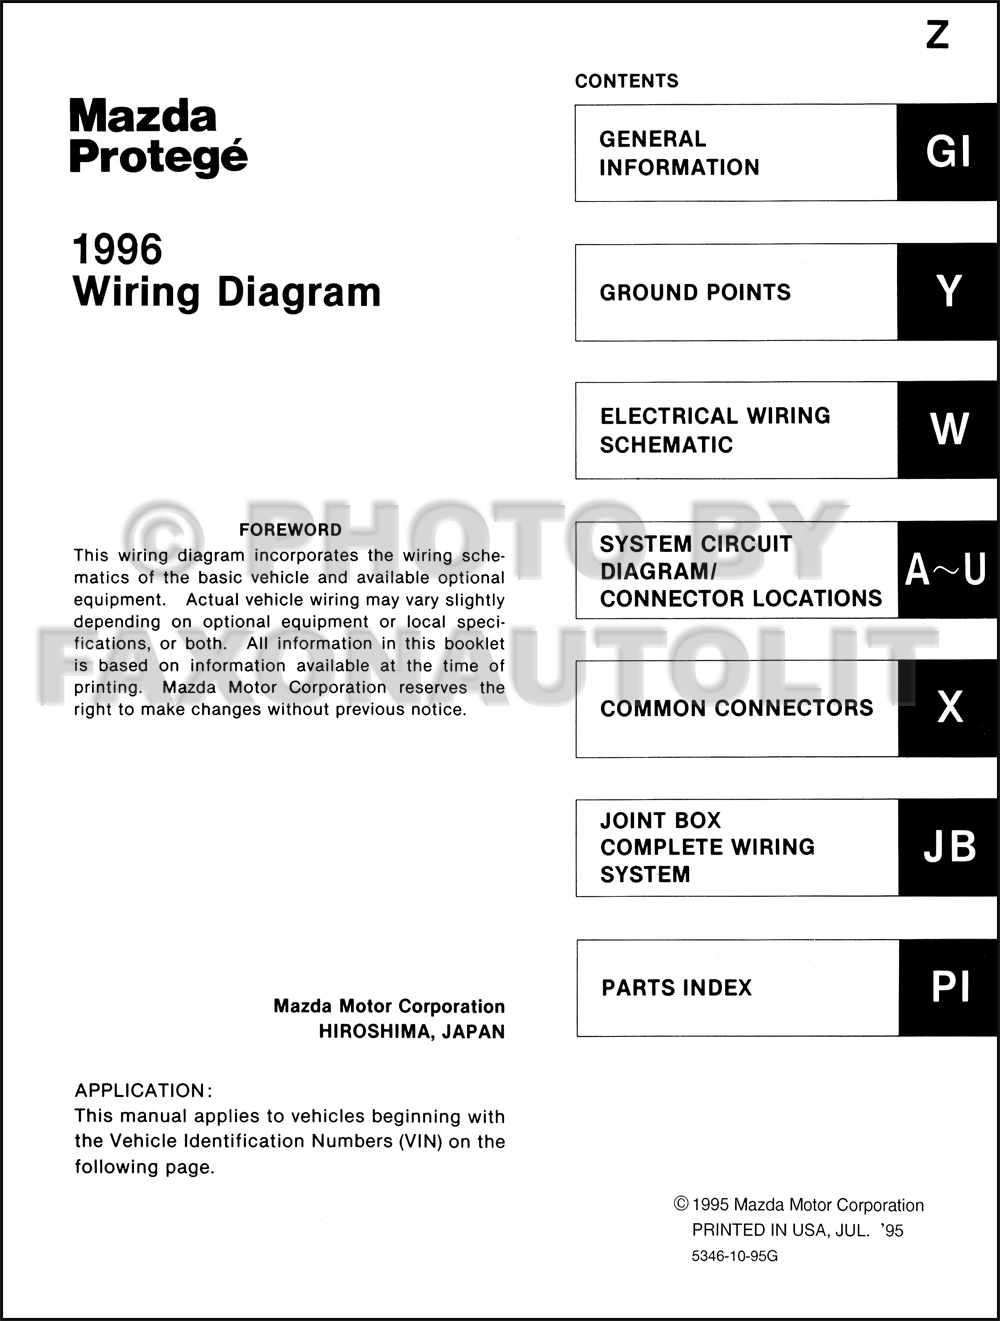 1996 mazda protege wiring diagram manual original. Black Bedroom Furniture Sets. Home Design Ideas